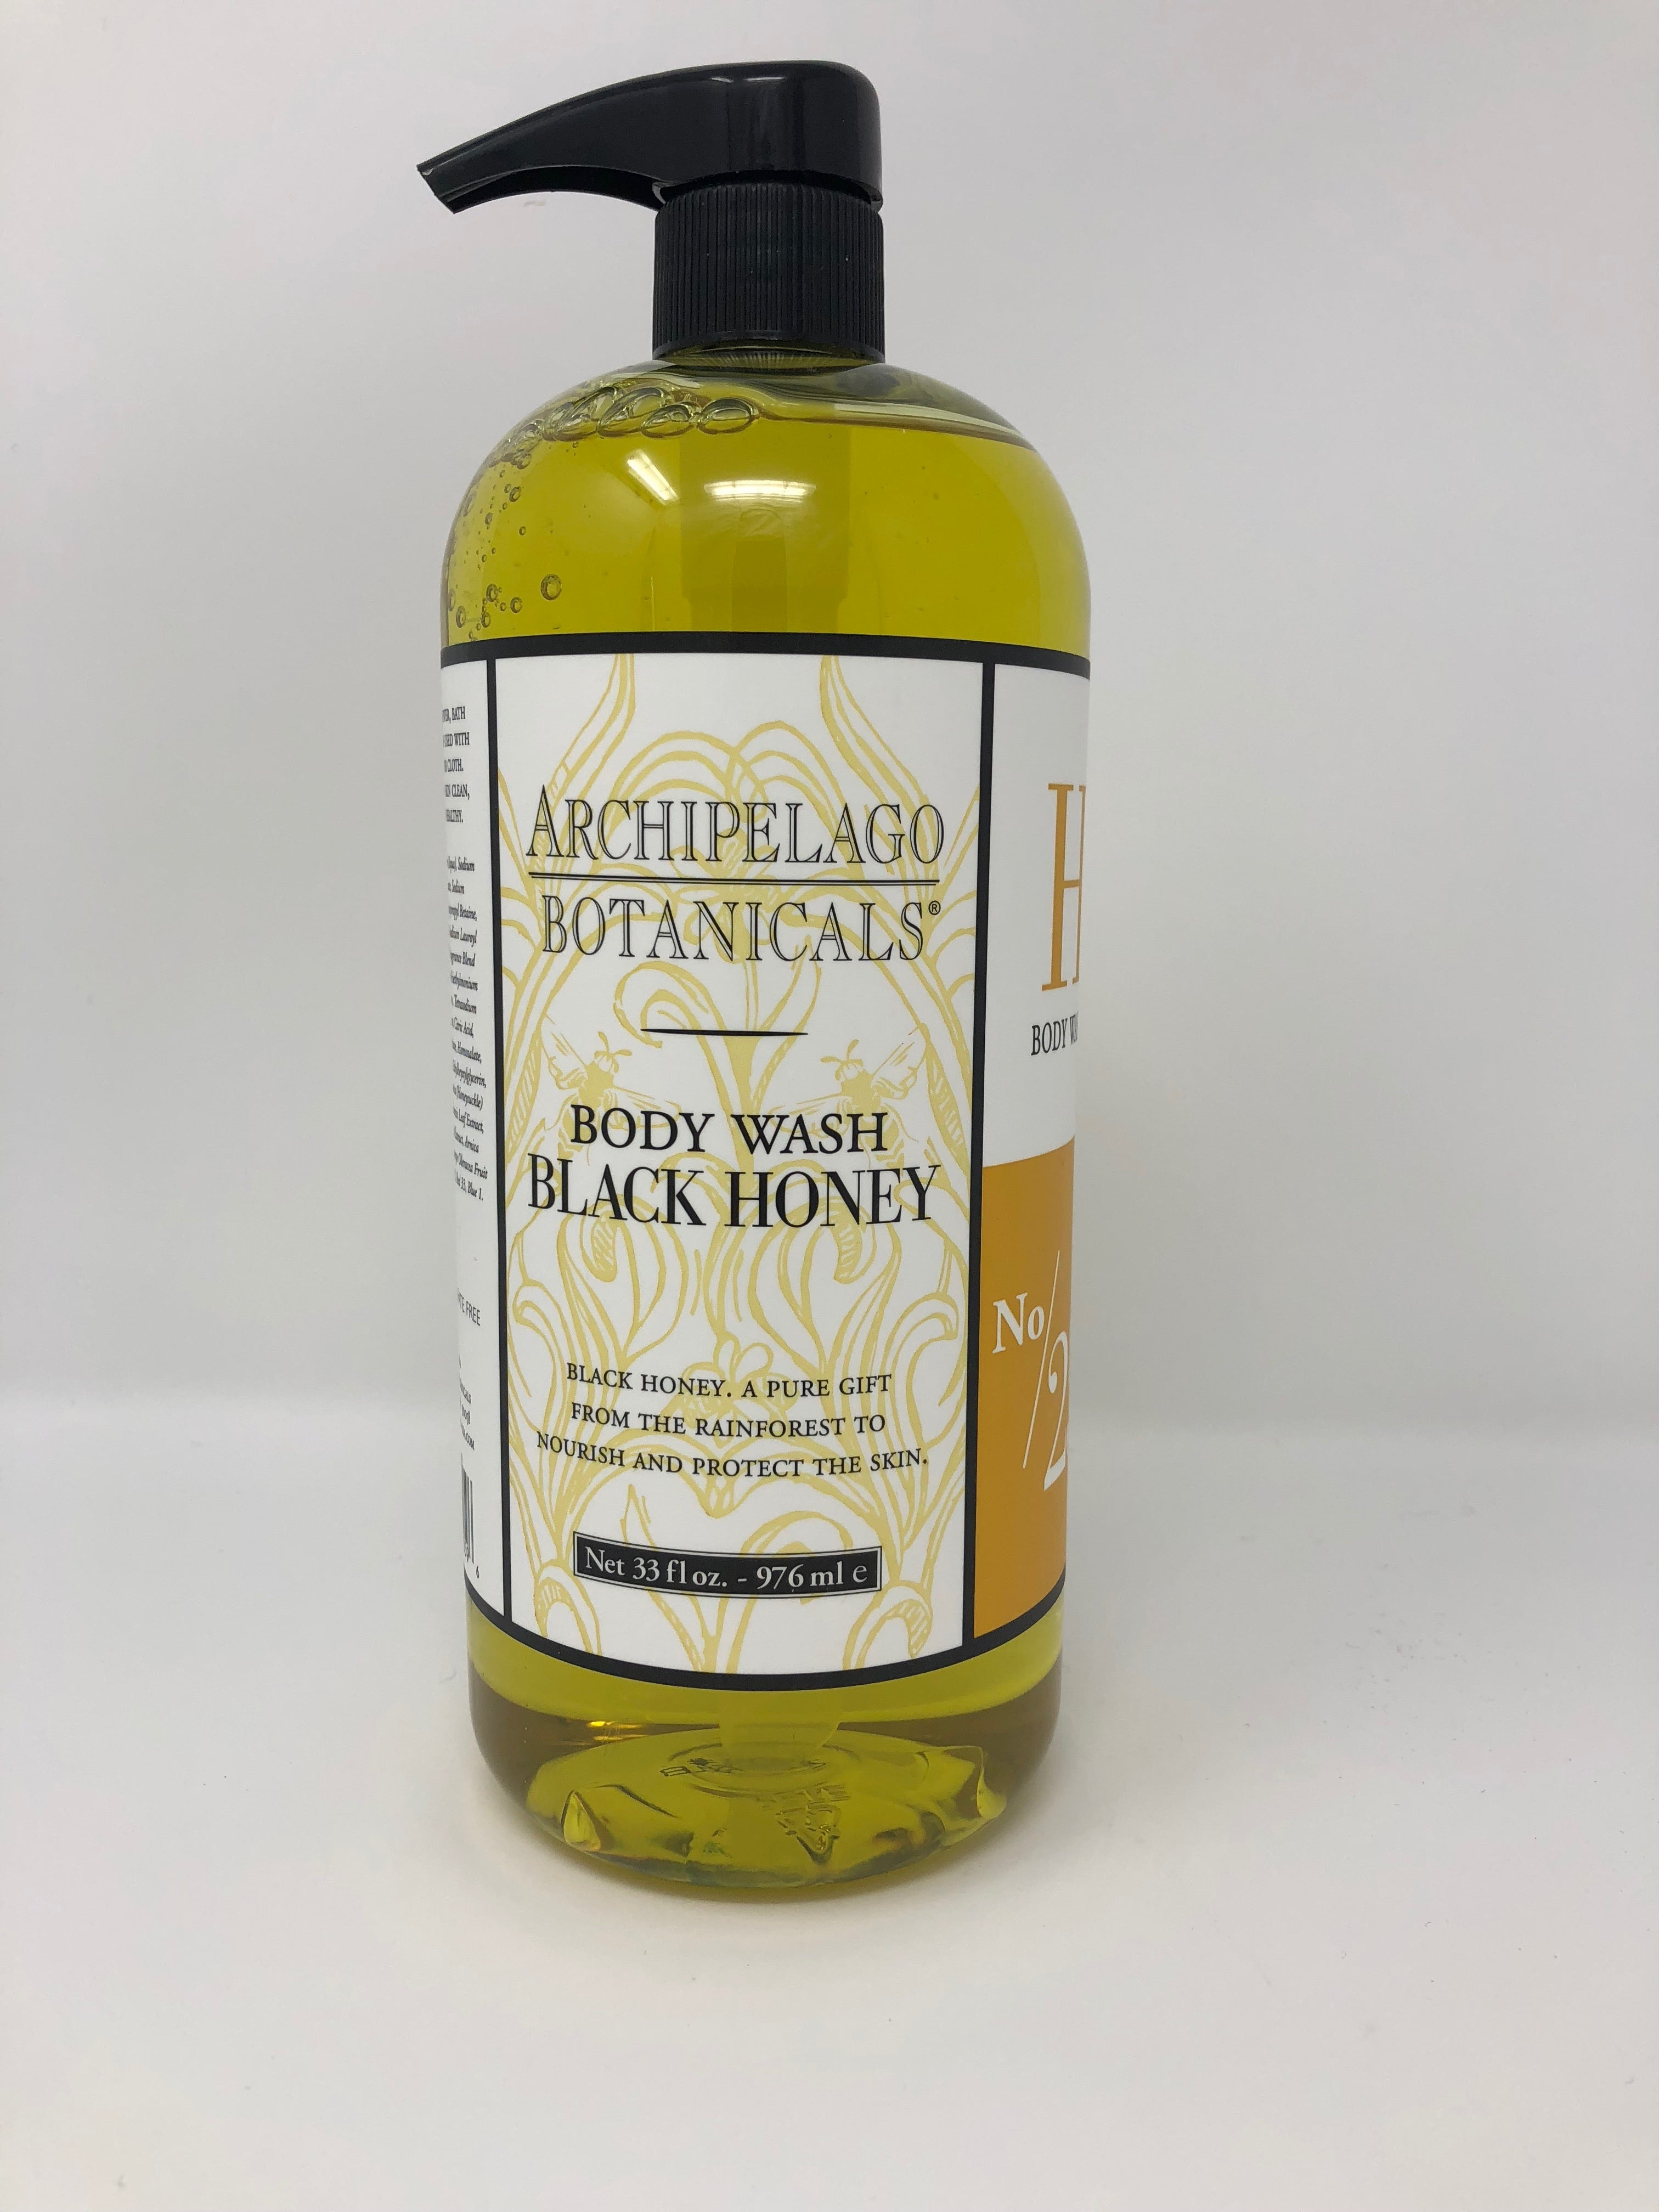 Body Wash Black Honey #25 (33oz/976ml)